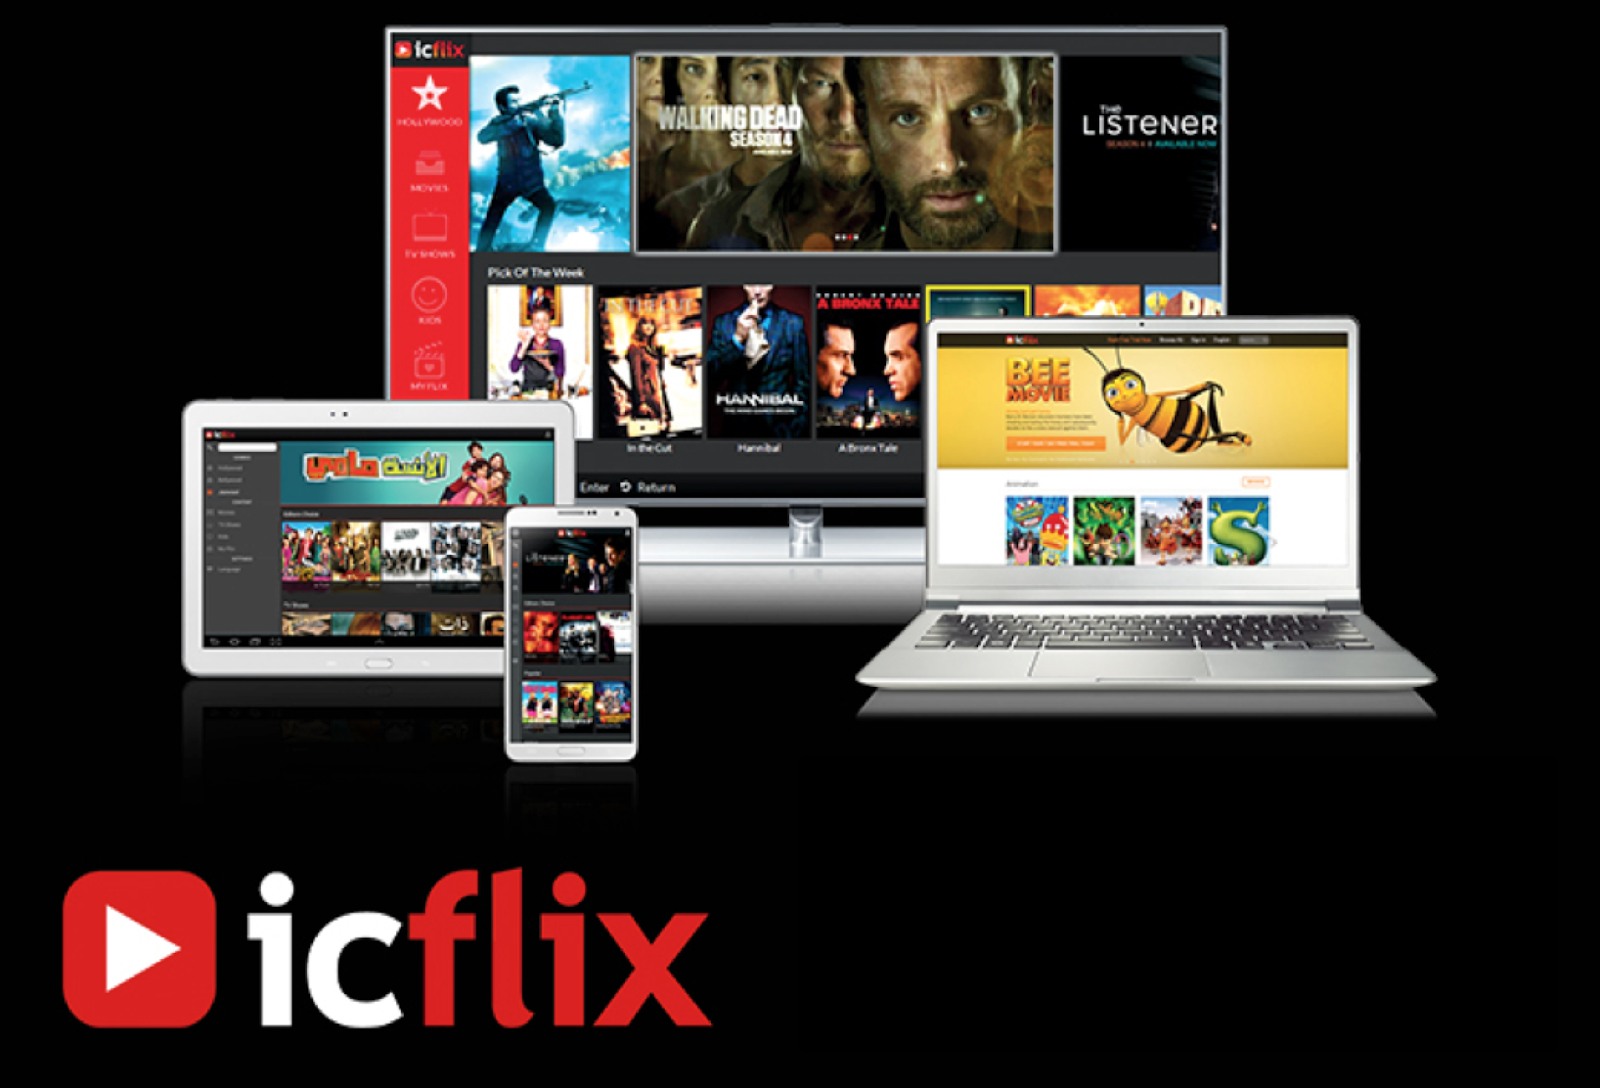 OTT service Icflix launches on Xbox One